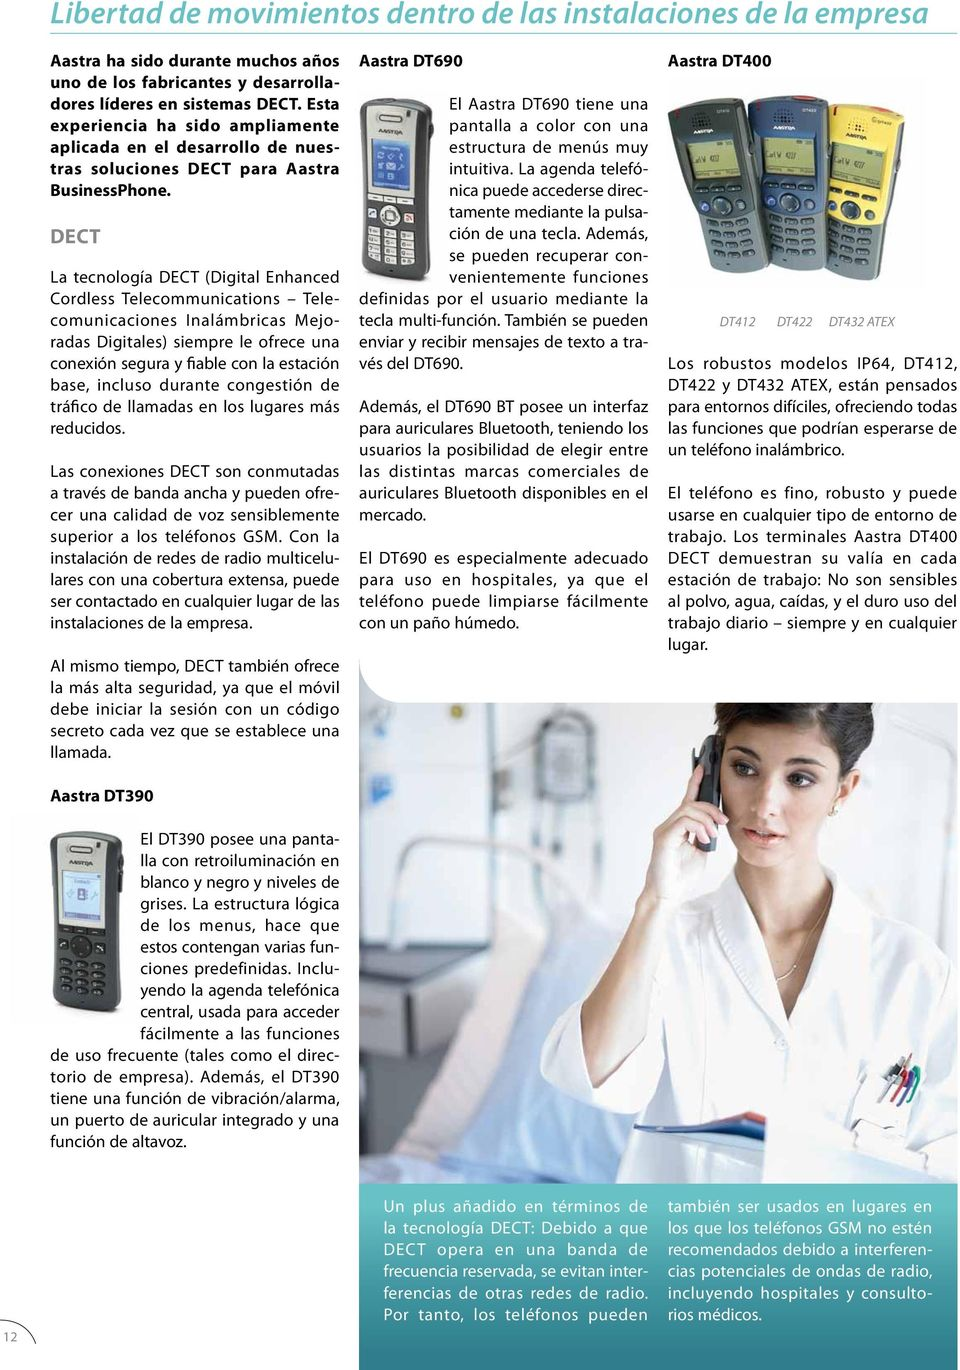 DECT La tecnología DECT (Digital Enhanced Cordless Telecommunications Telecomunicaciones Inalámbricas Mejoradas Digitales) siempre le ofrece una conexión segura y fiable con la estación base, incluso